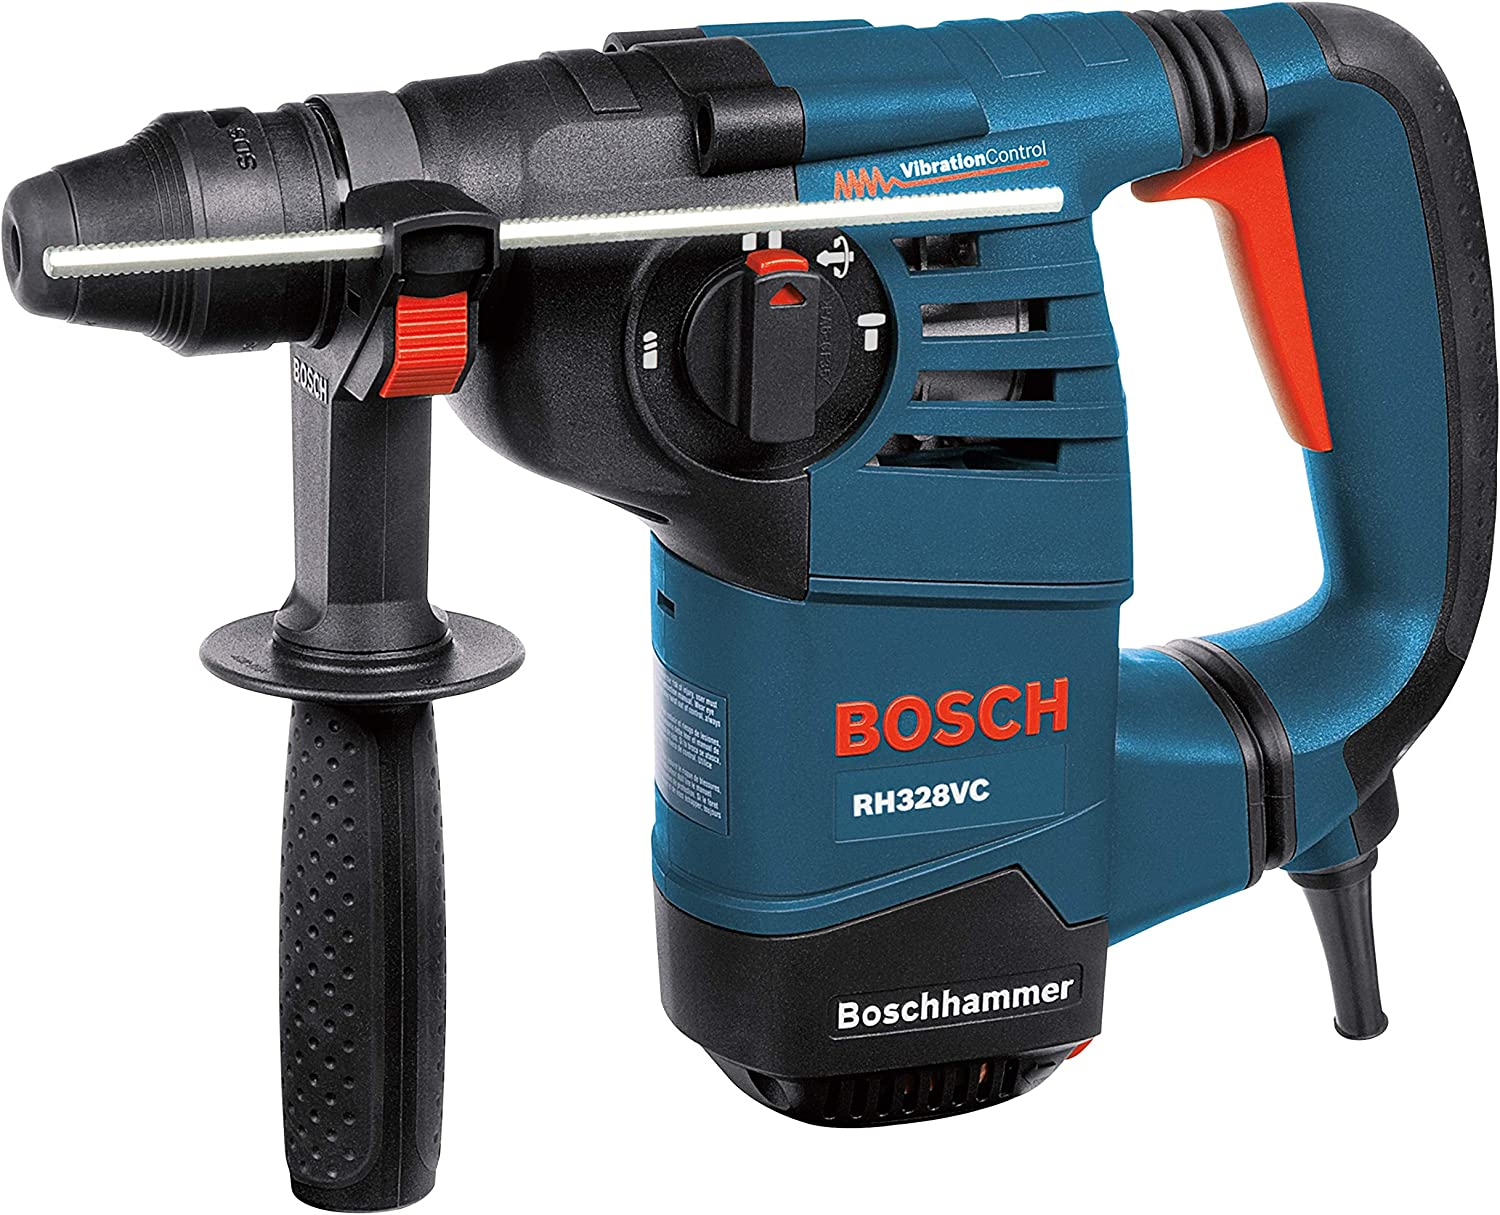 7. Bosch RH328VC 1-1/8-Inch SDS Rotary Hammer with Vibration Control